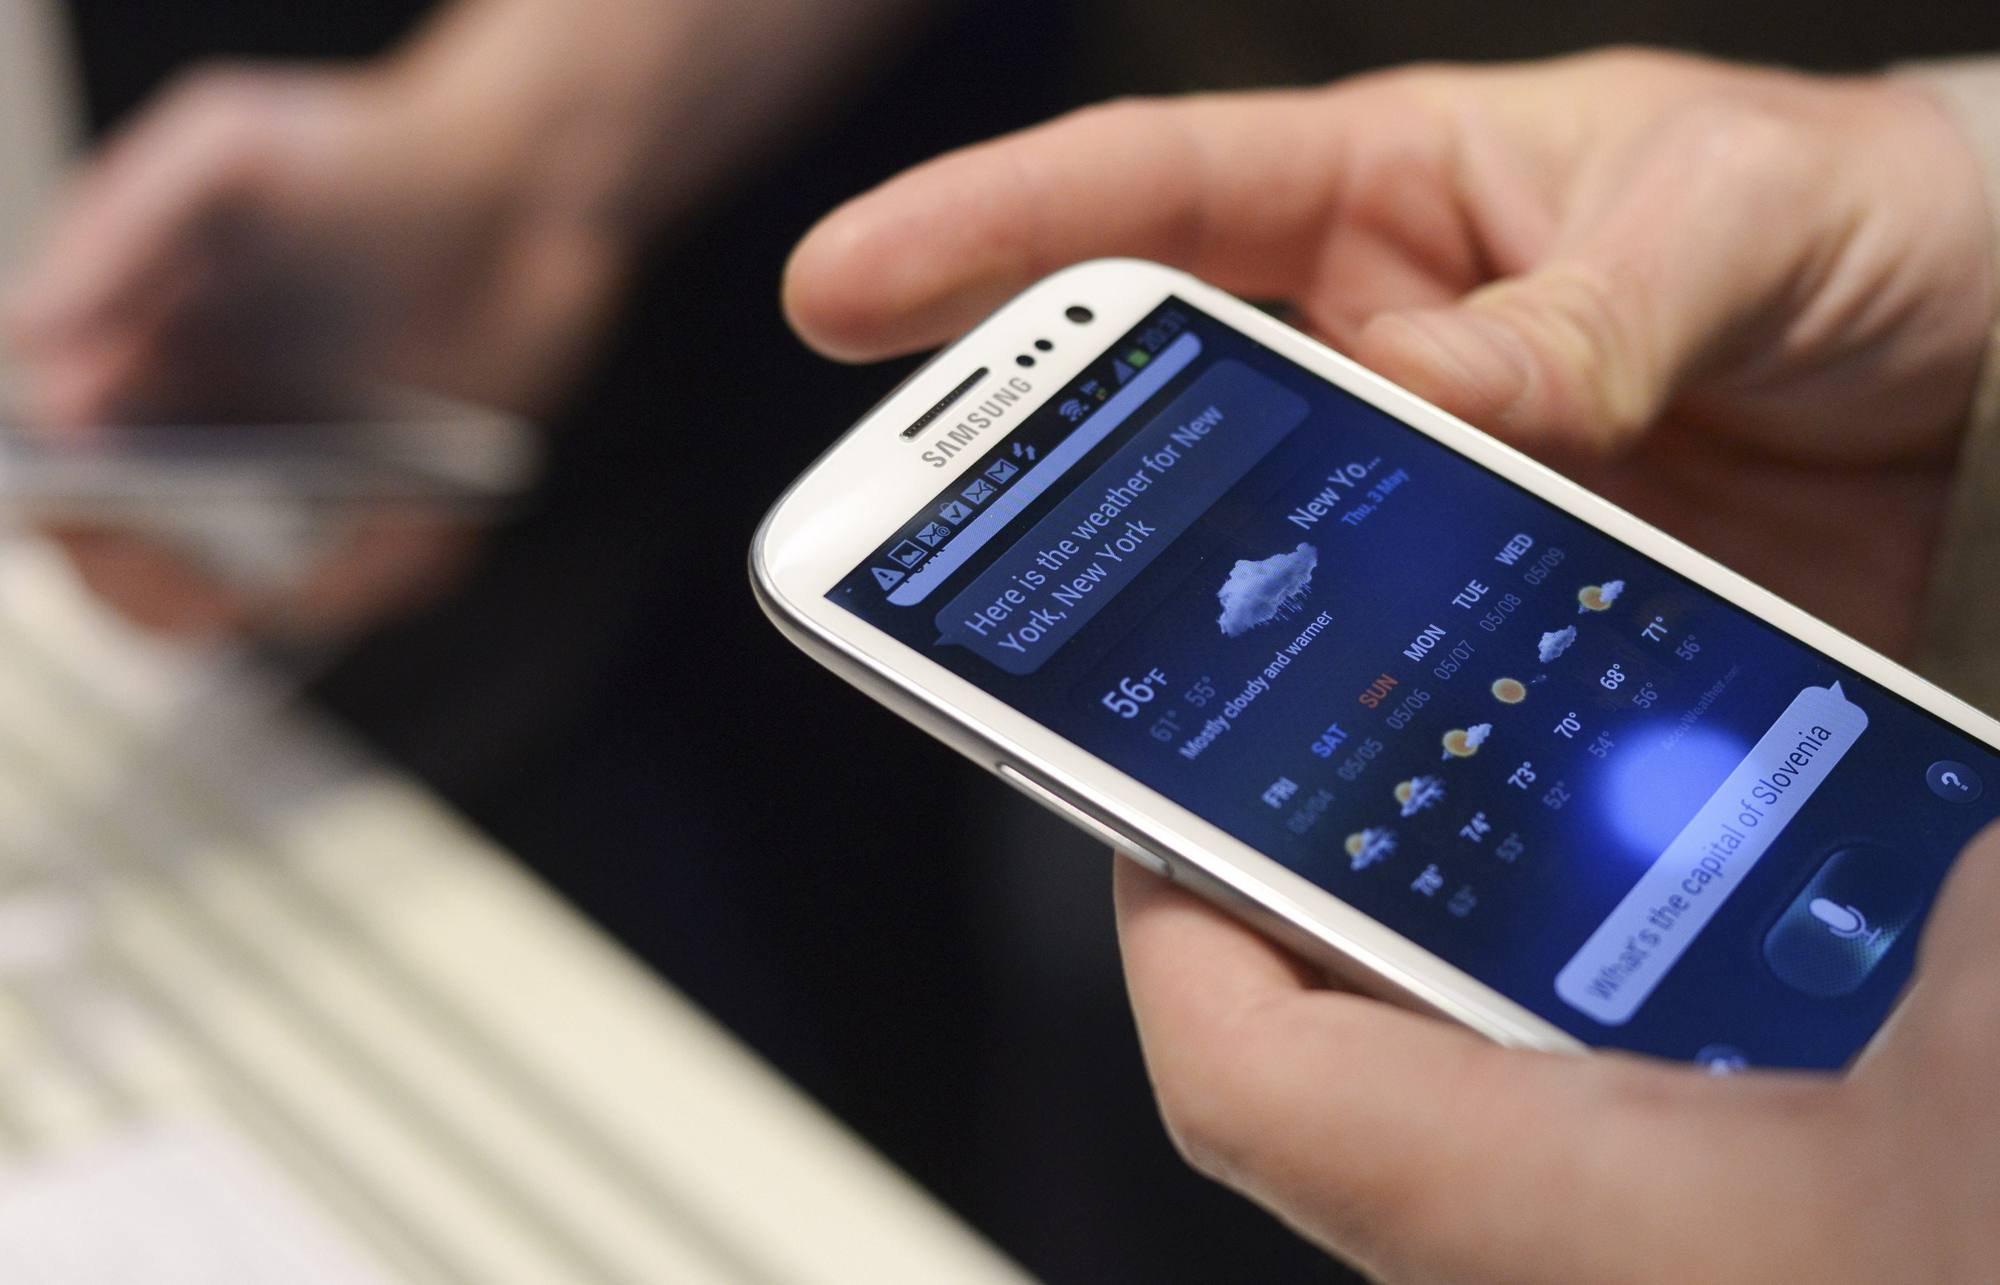 A man uses Samsung Electronics' new Samsung Galaxy SIII smartphone during its launch in London